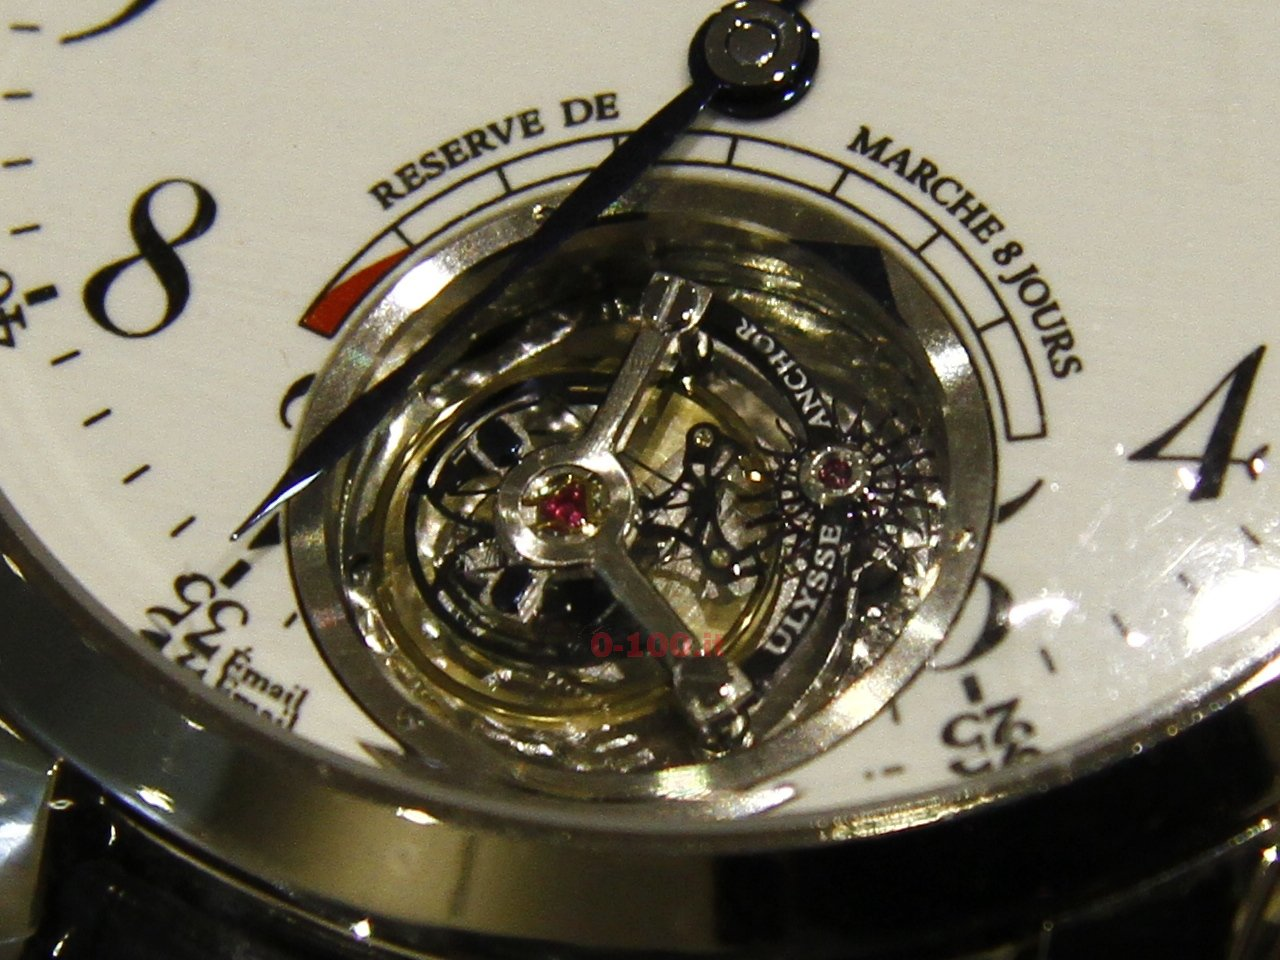 baselworld-2015_ulysse-nardin-anchor-tourbillon-0-100-5